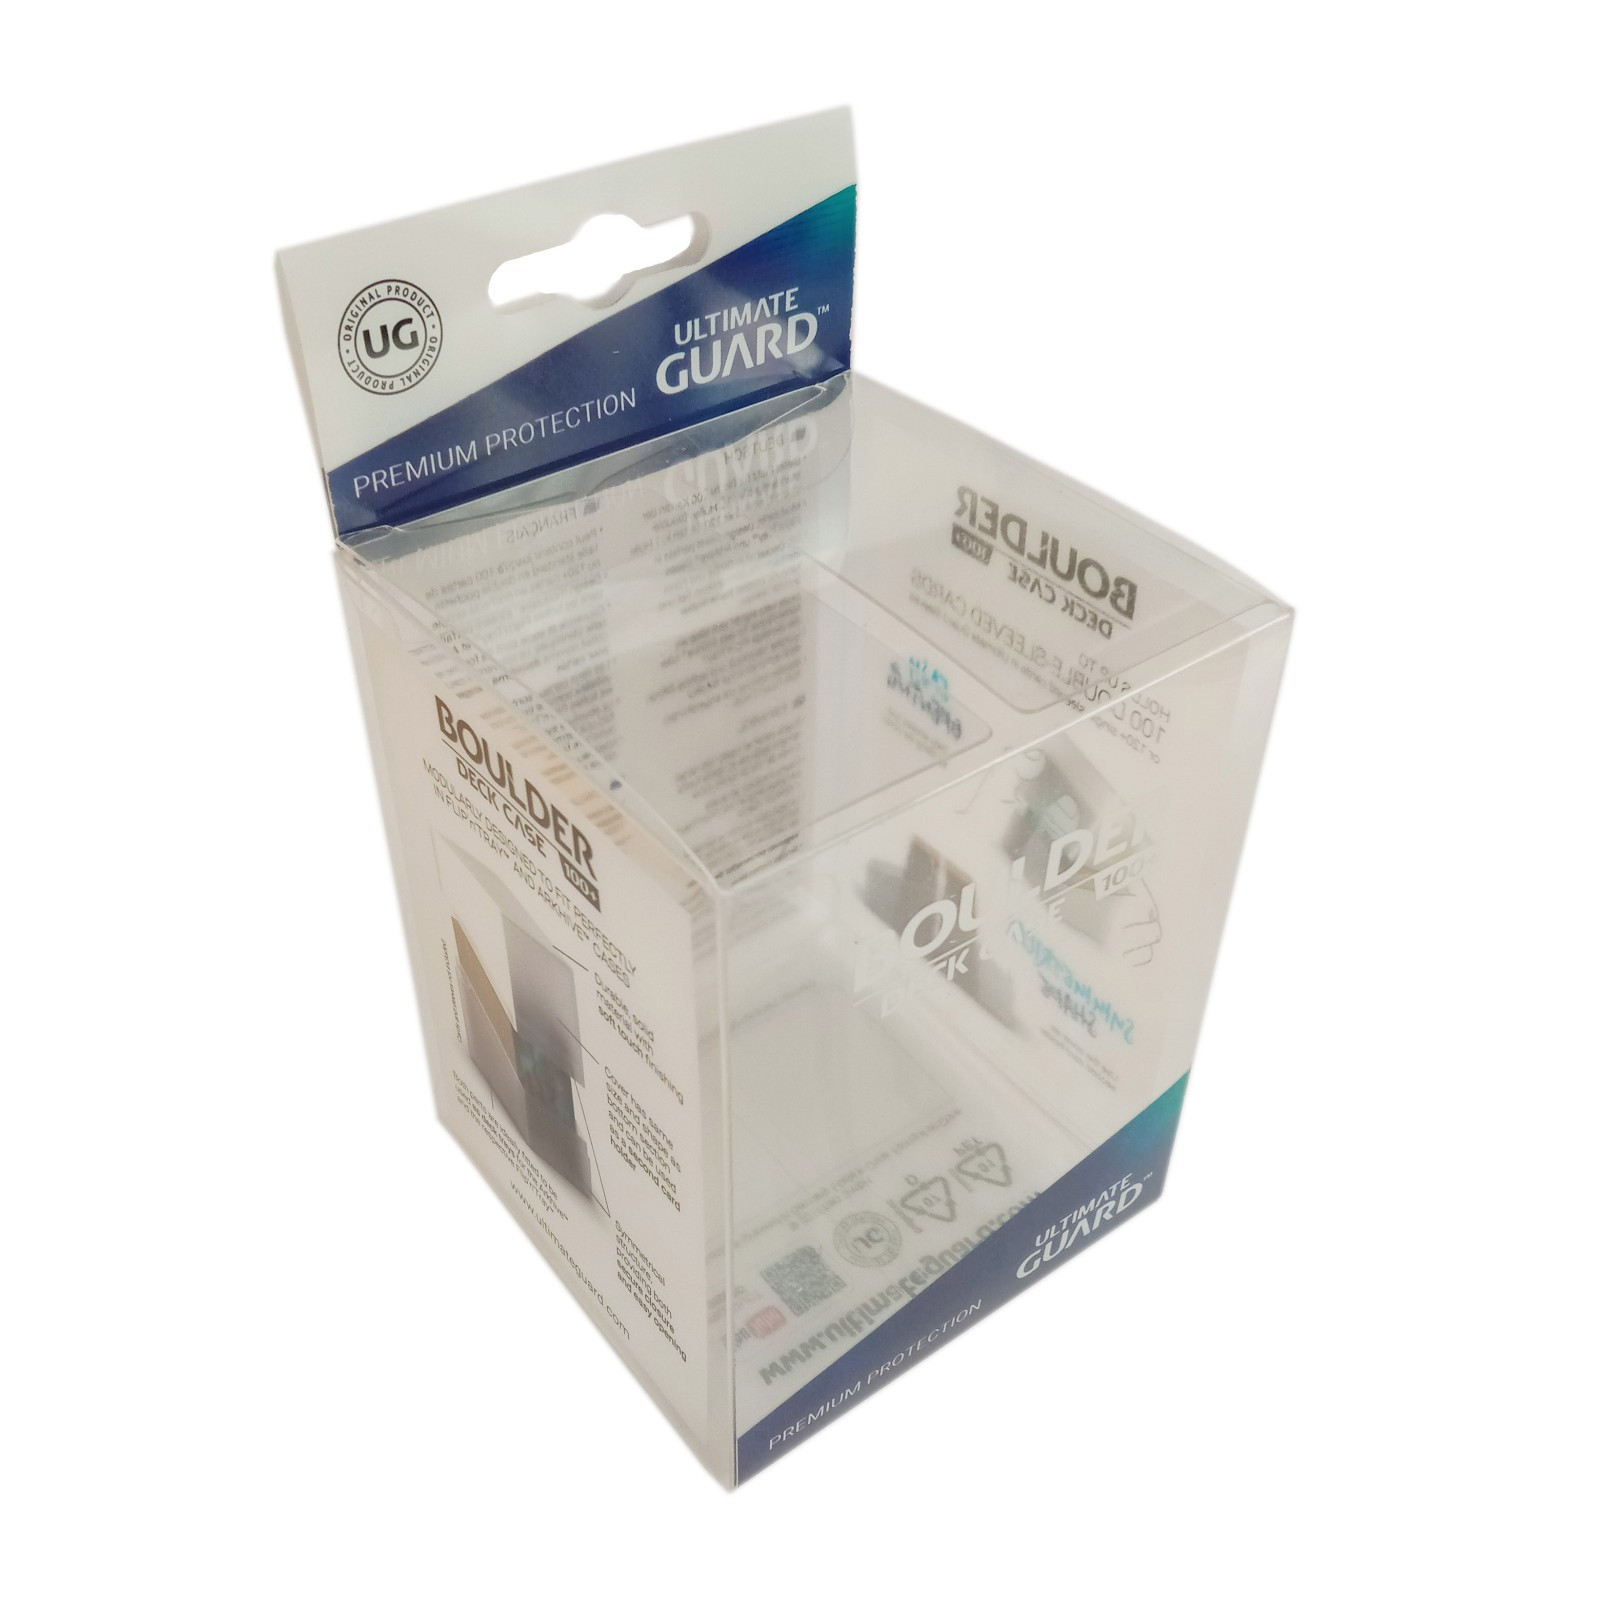 Yijianxing Plastic Products retail plastic box packaging order now for food-2